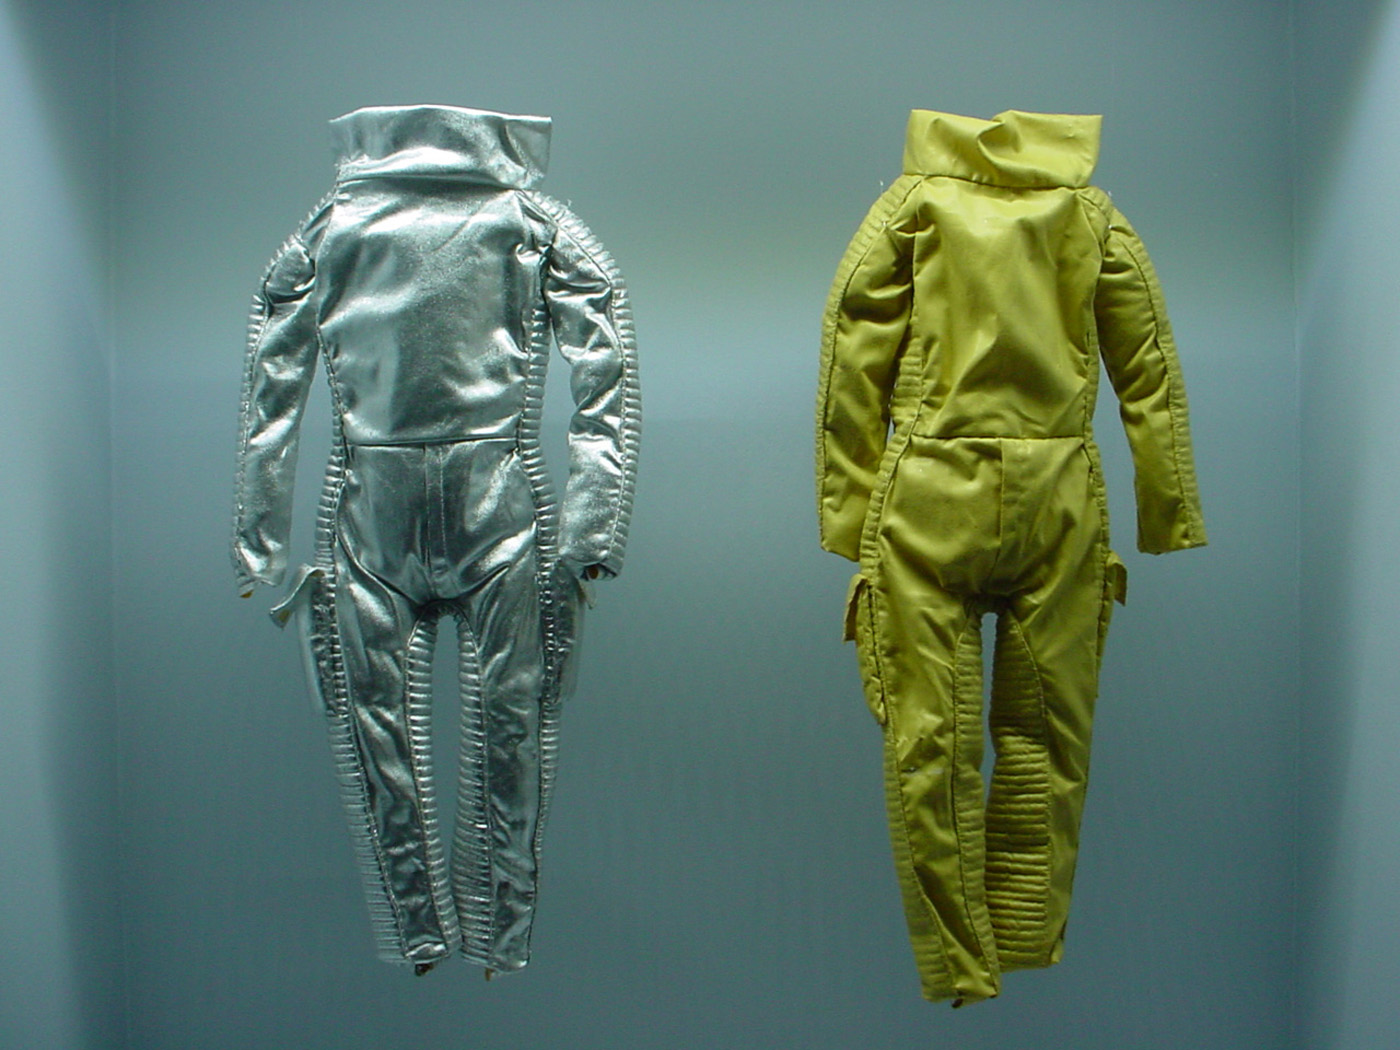 Miniature space suit prototypes by Jacques Fonteray for 'Moonraker' (1979) (photo by the author for Hyperallergic)